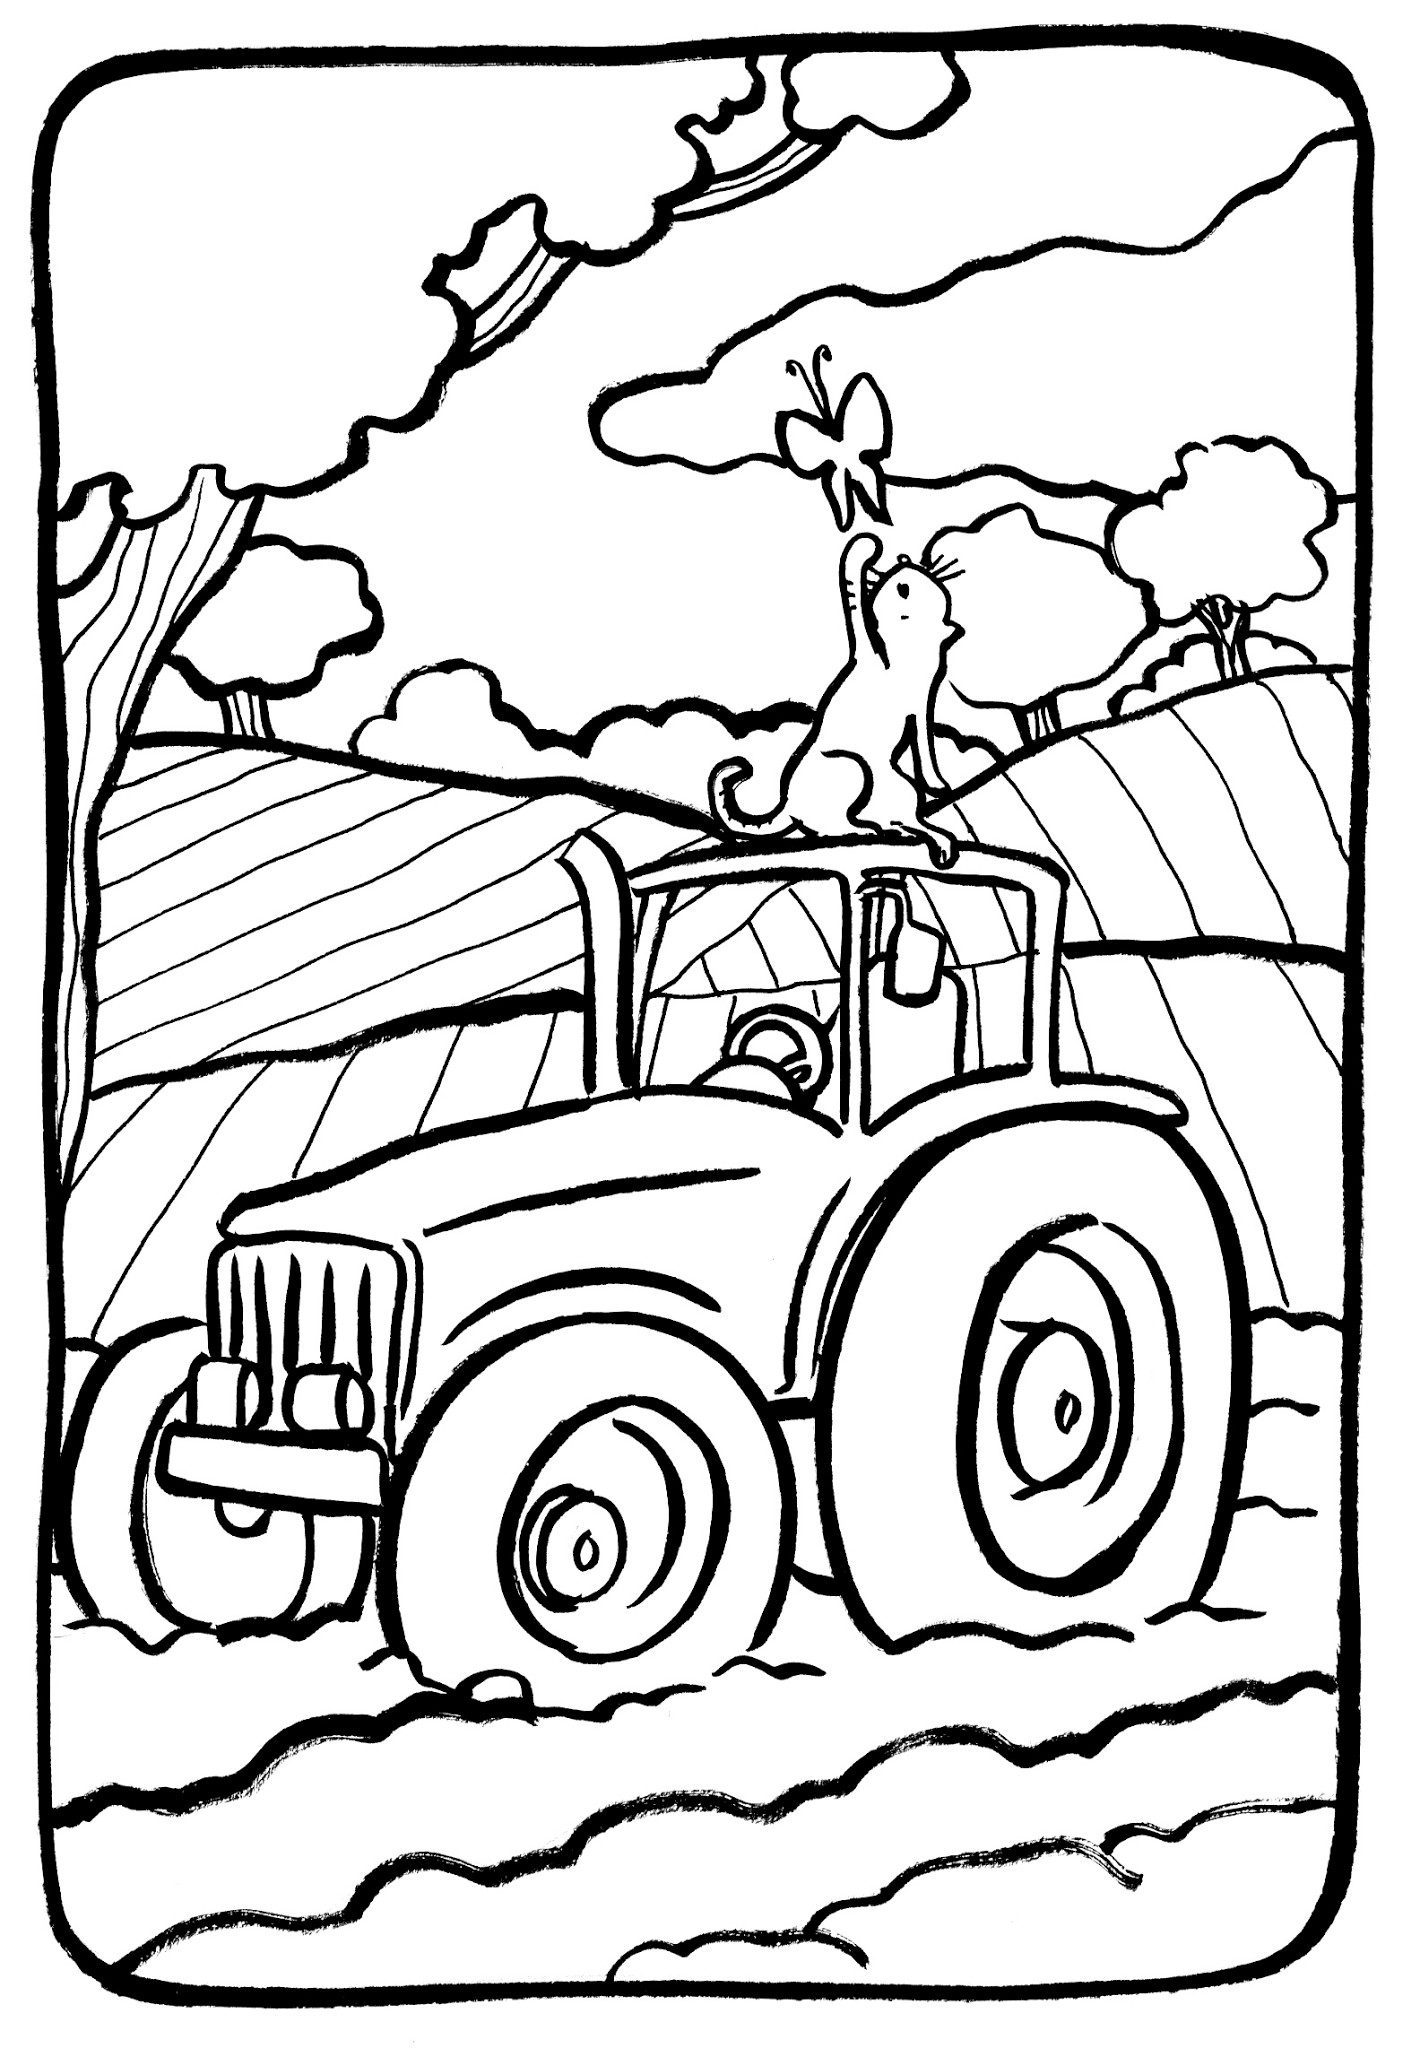 Luxe Dessin Coloriage Tracteur Agricole